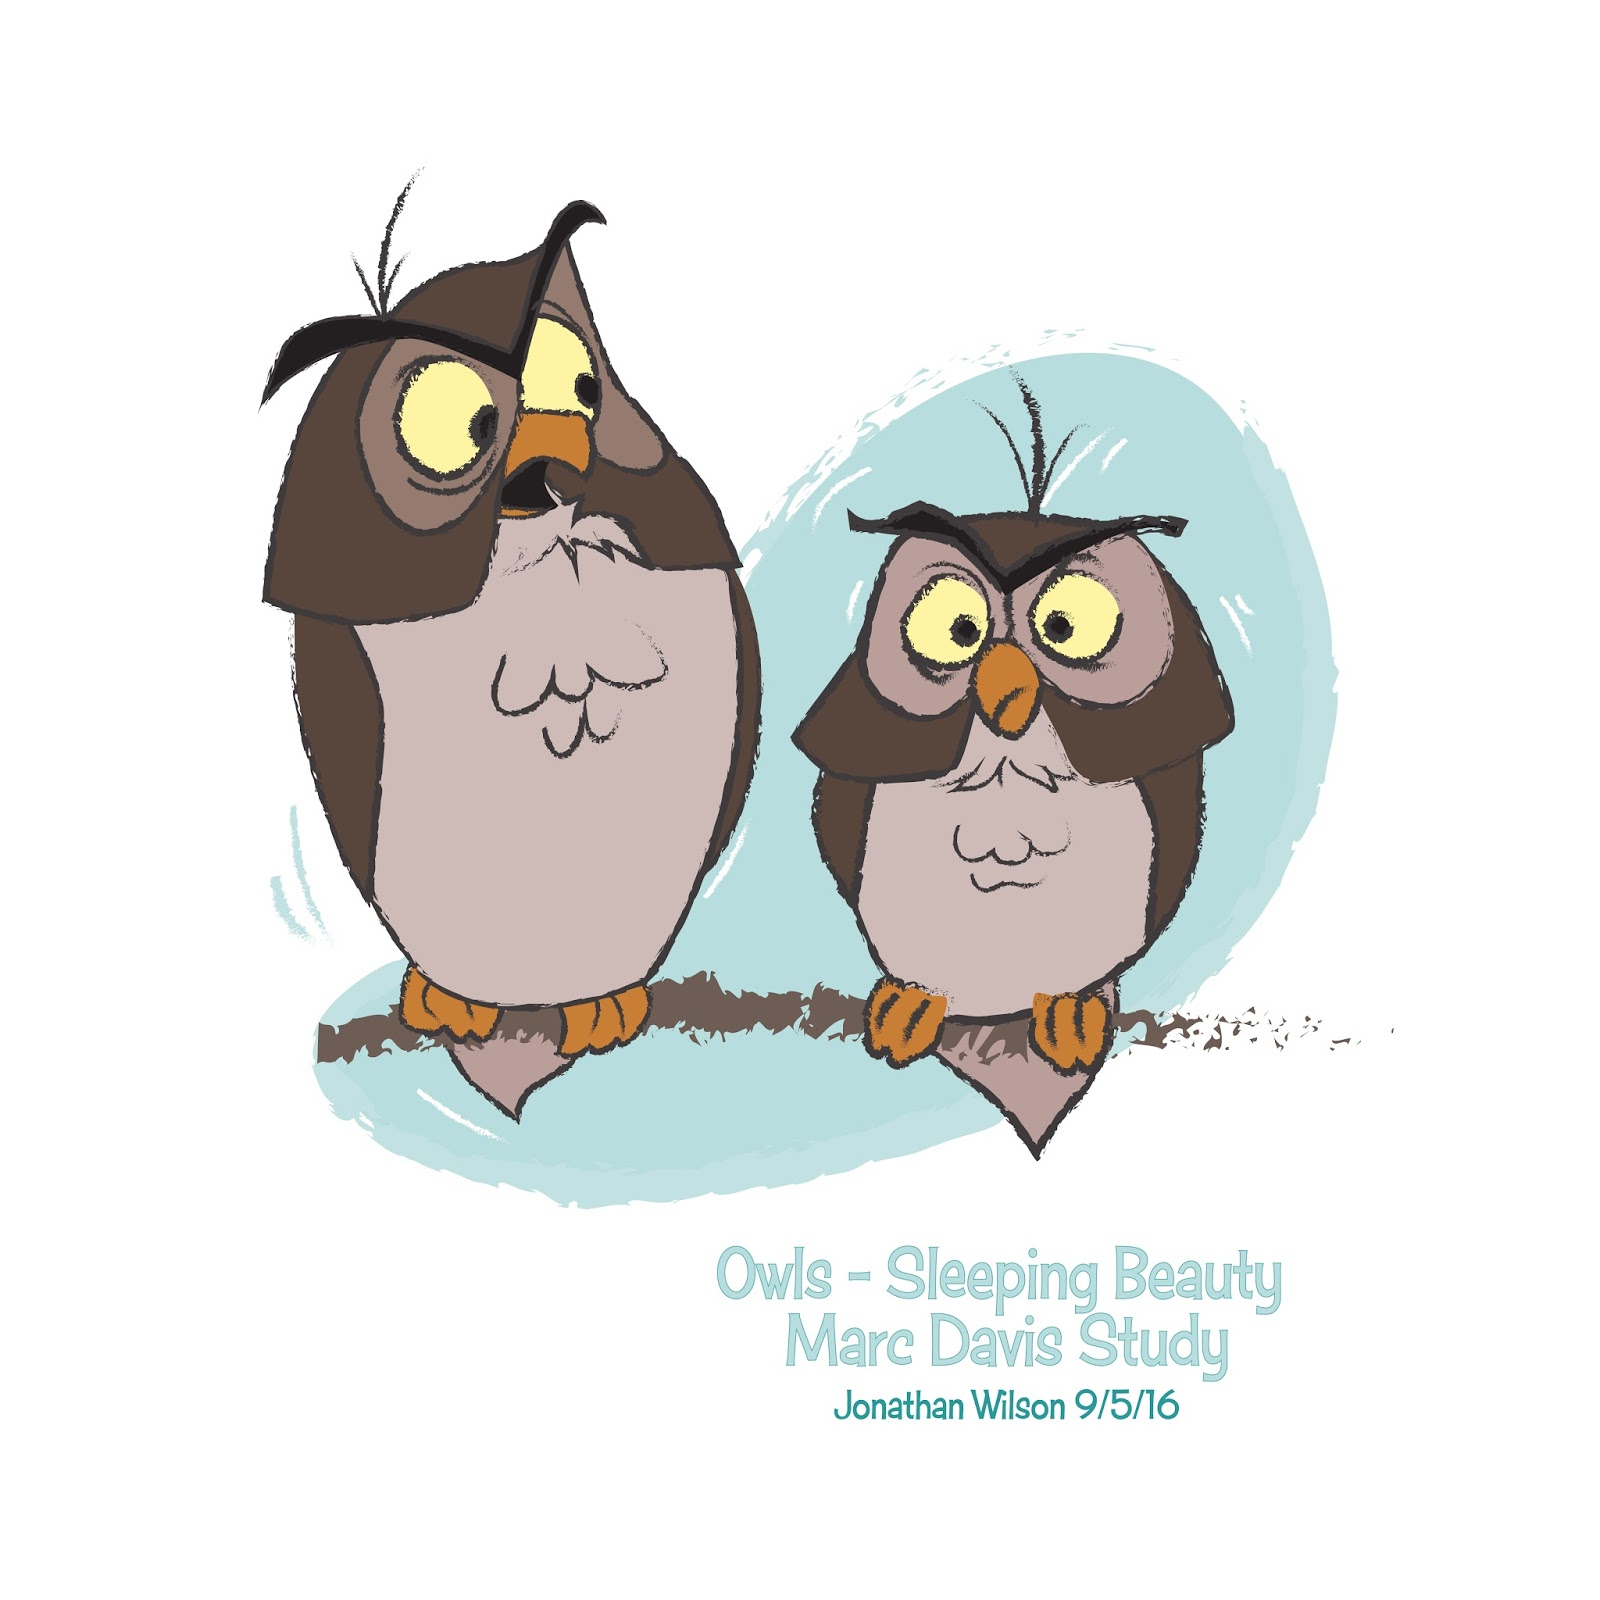 Disney Character Design Study : Owls sleeping beauty marc davis study jonathan